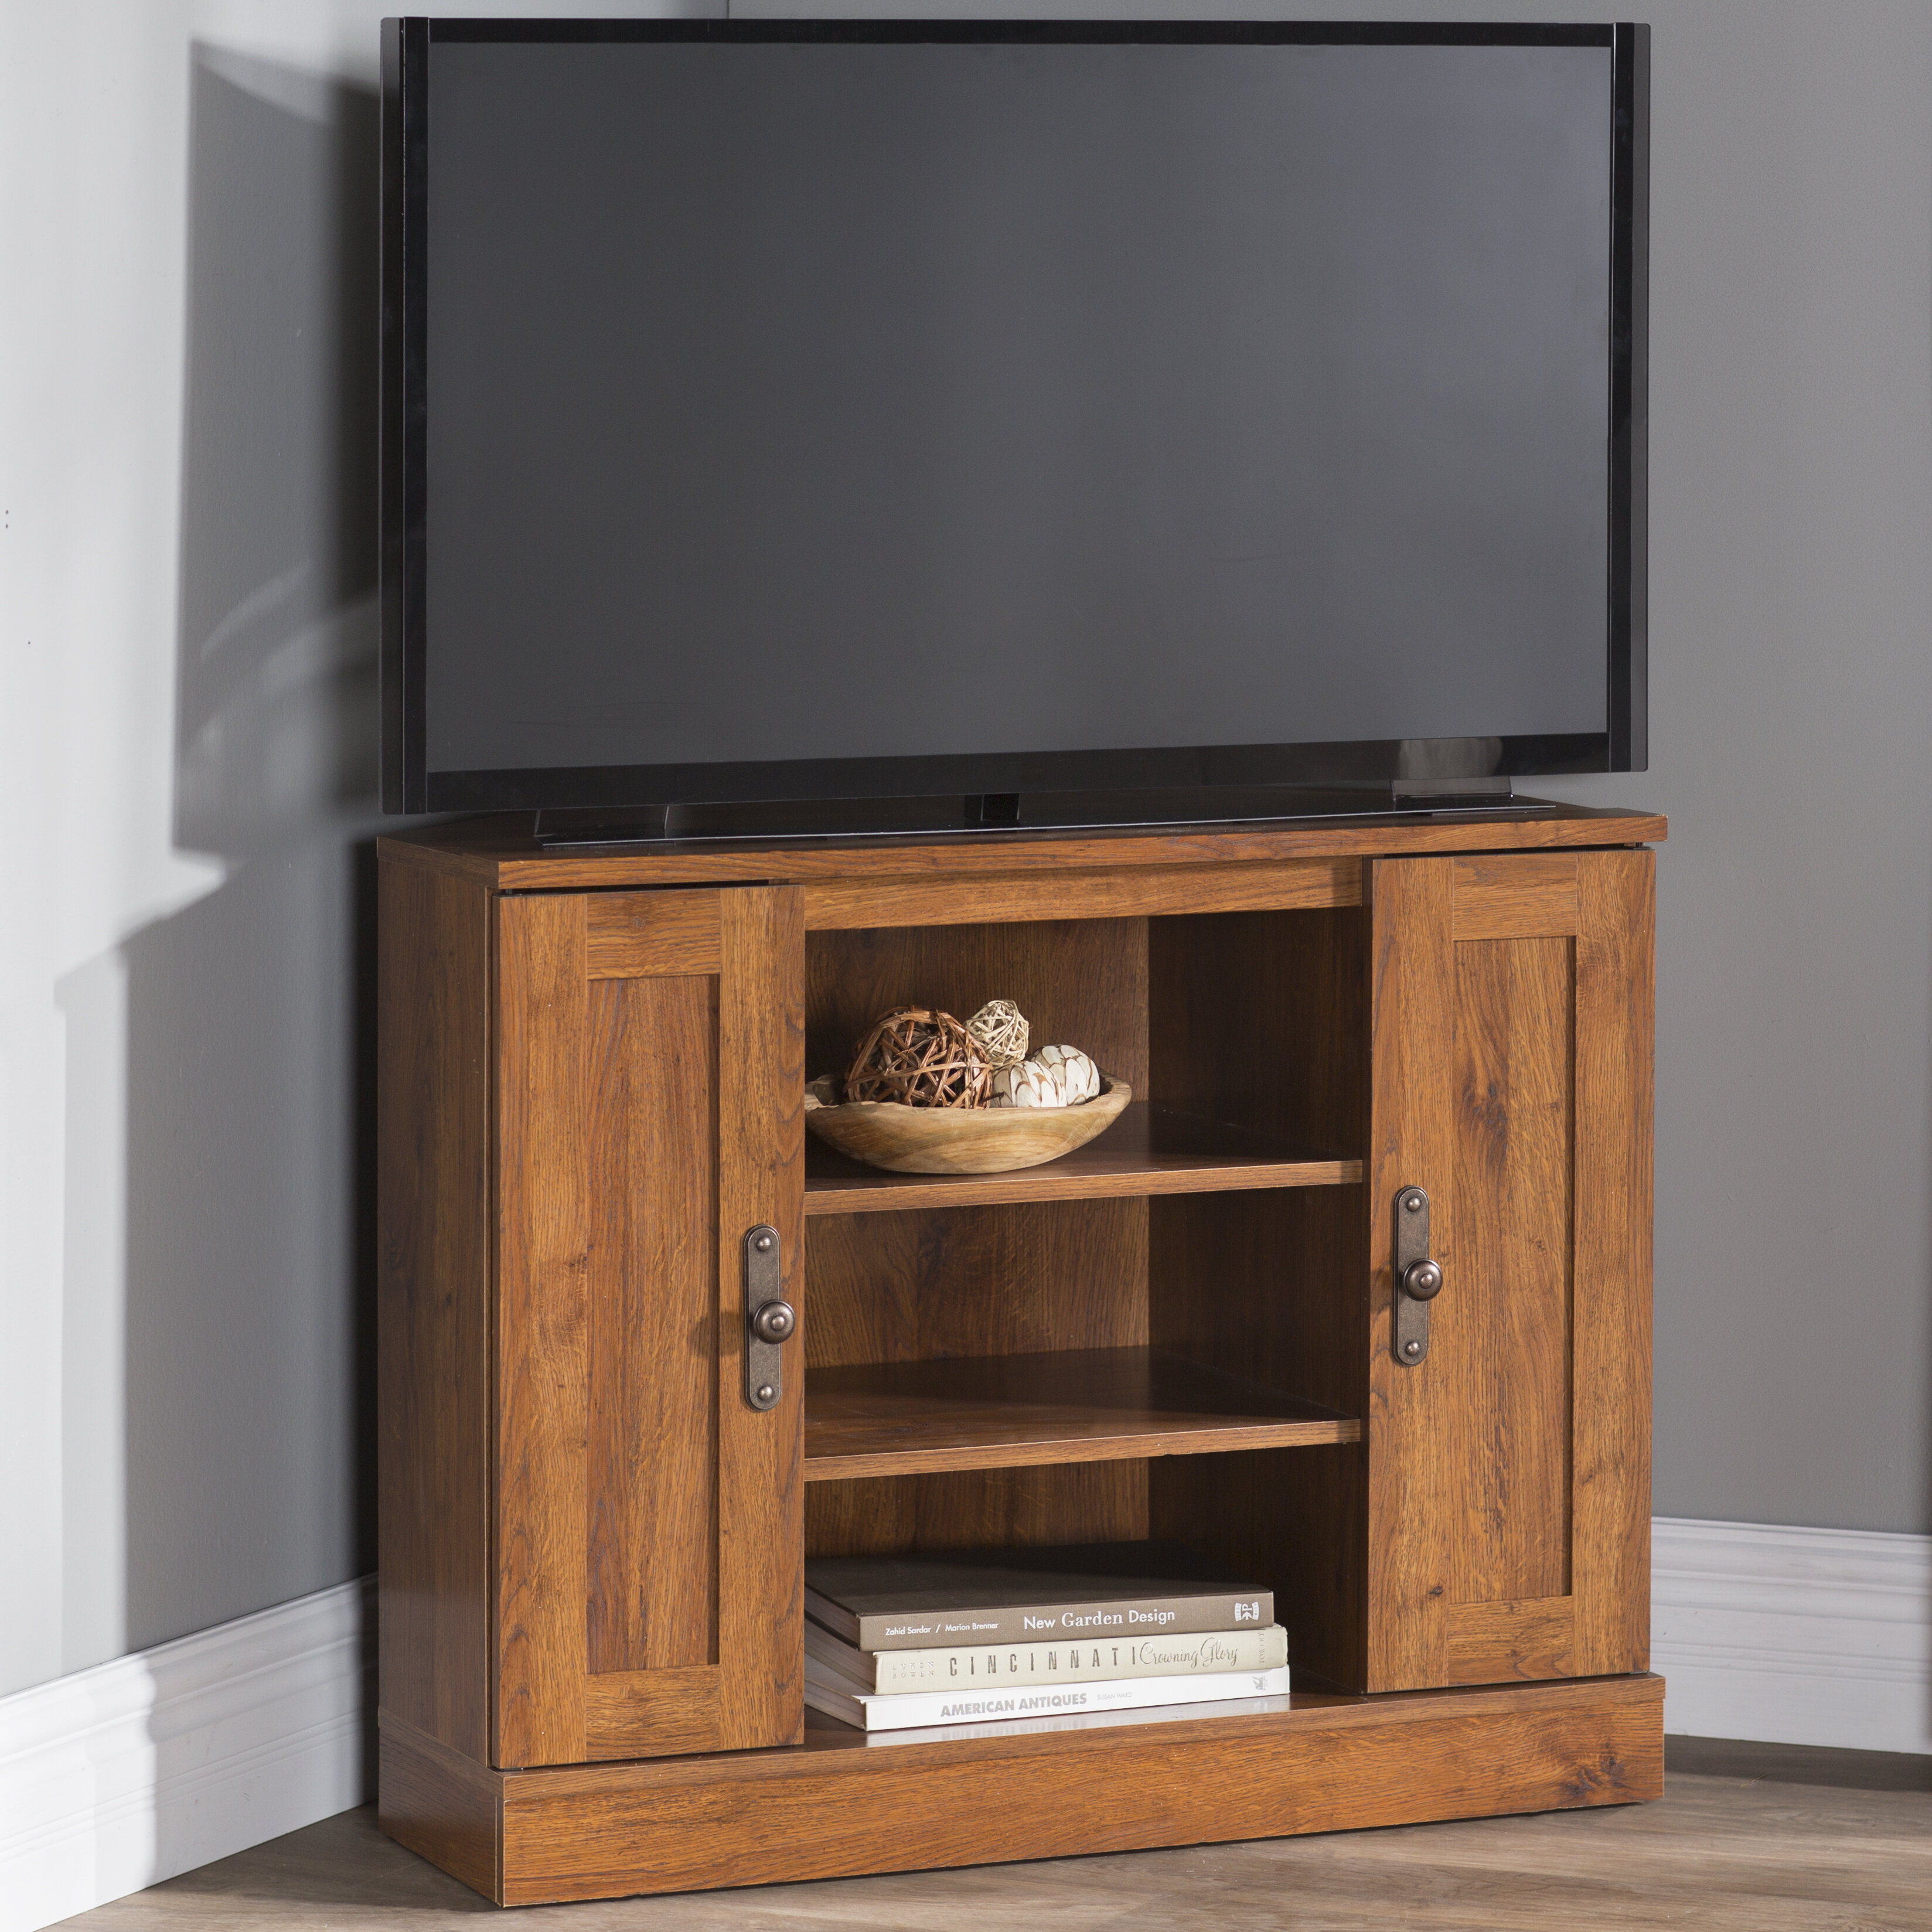 Alcott Hill Englewood Corner Tv Stand For Tvs Up To 37 Reviews